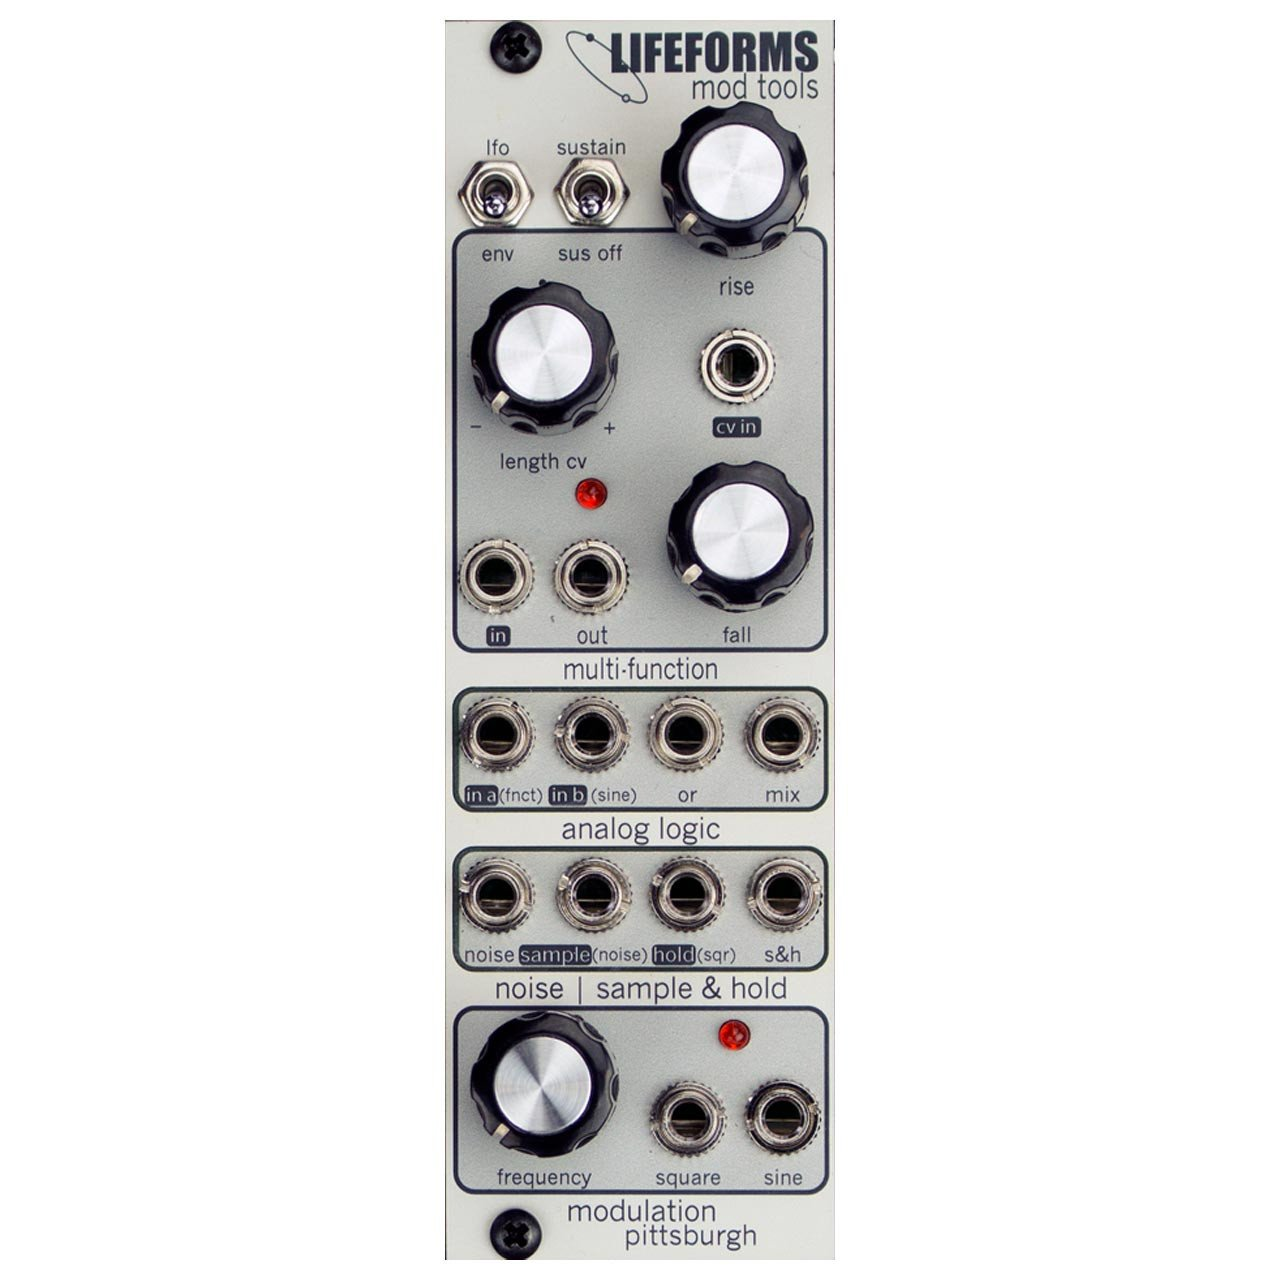 Modular - Pittsburgh Modular Lifeforms Mod Tools - Multi-Function Modulation Module